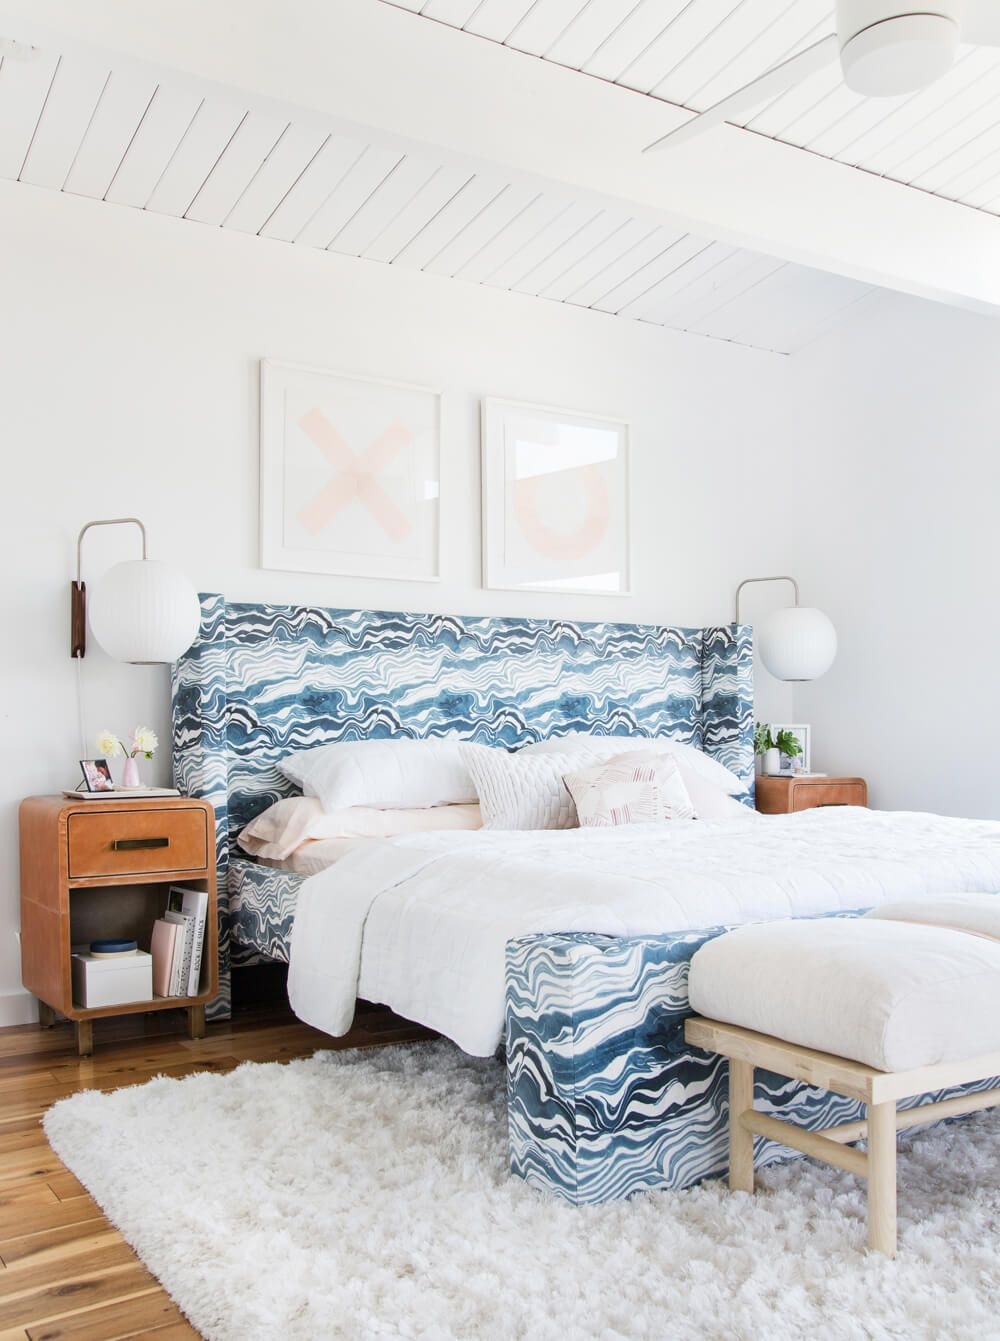 Designed By Emily Henderson, Photography By Tessa Neustadt. Bed Goals